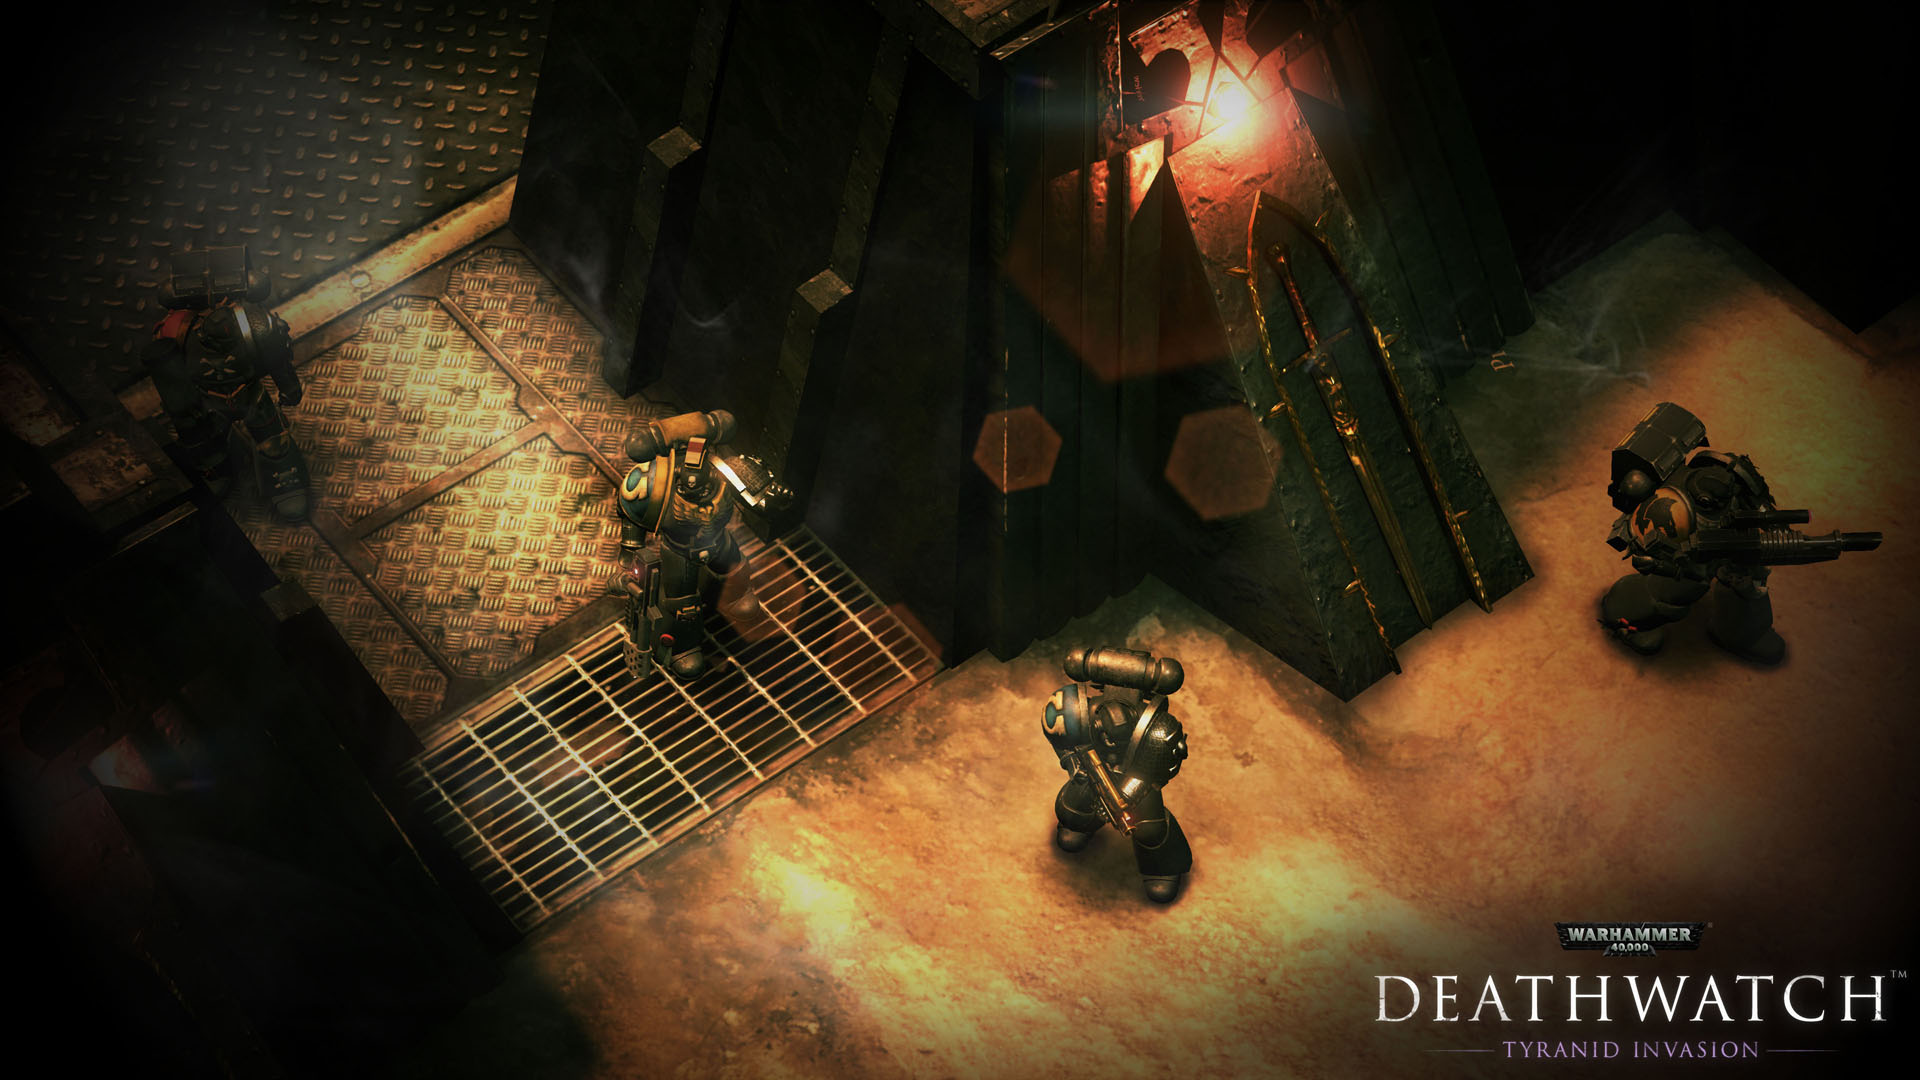 Rodeo Games announces Deathwatch: Tyranid Invasion (IOS, Unreal 4